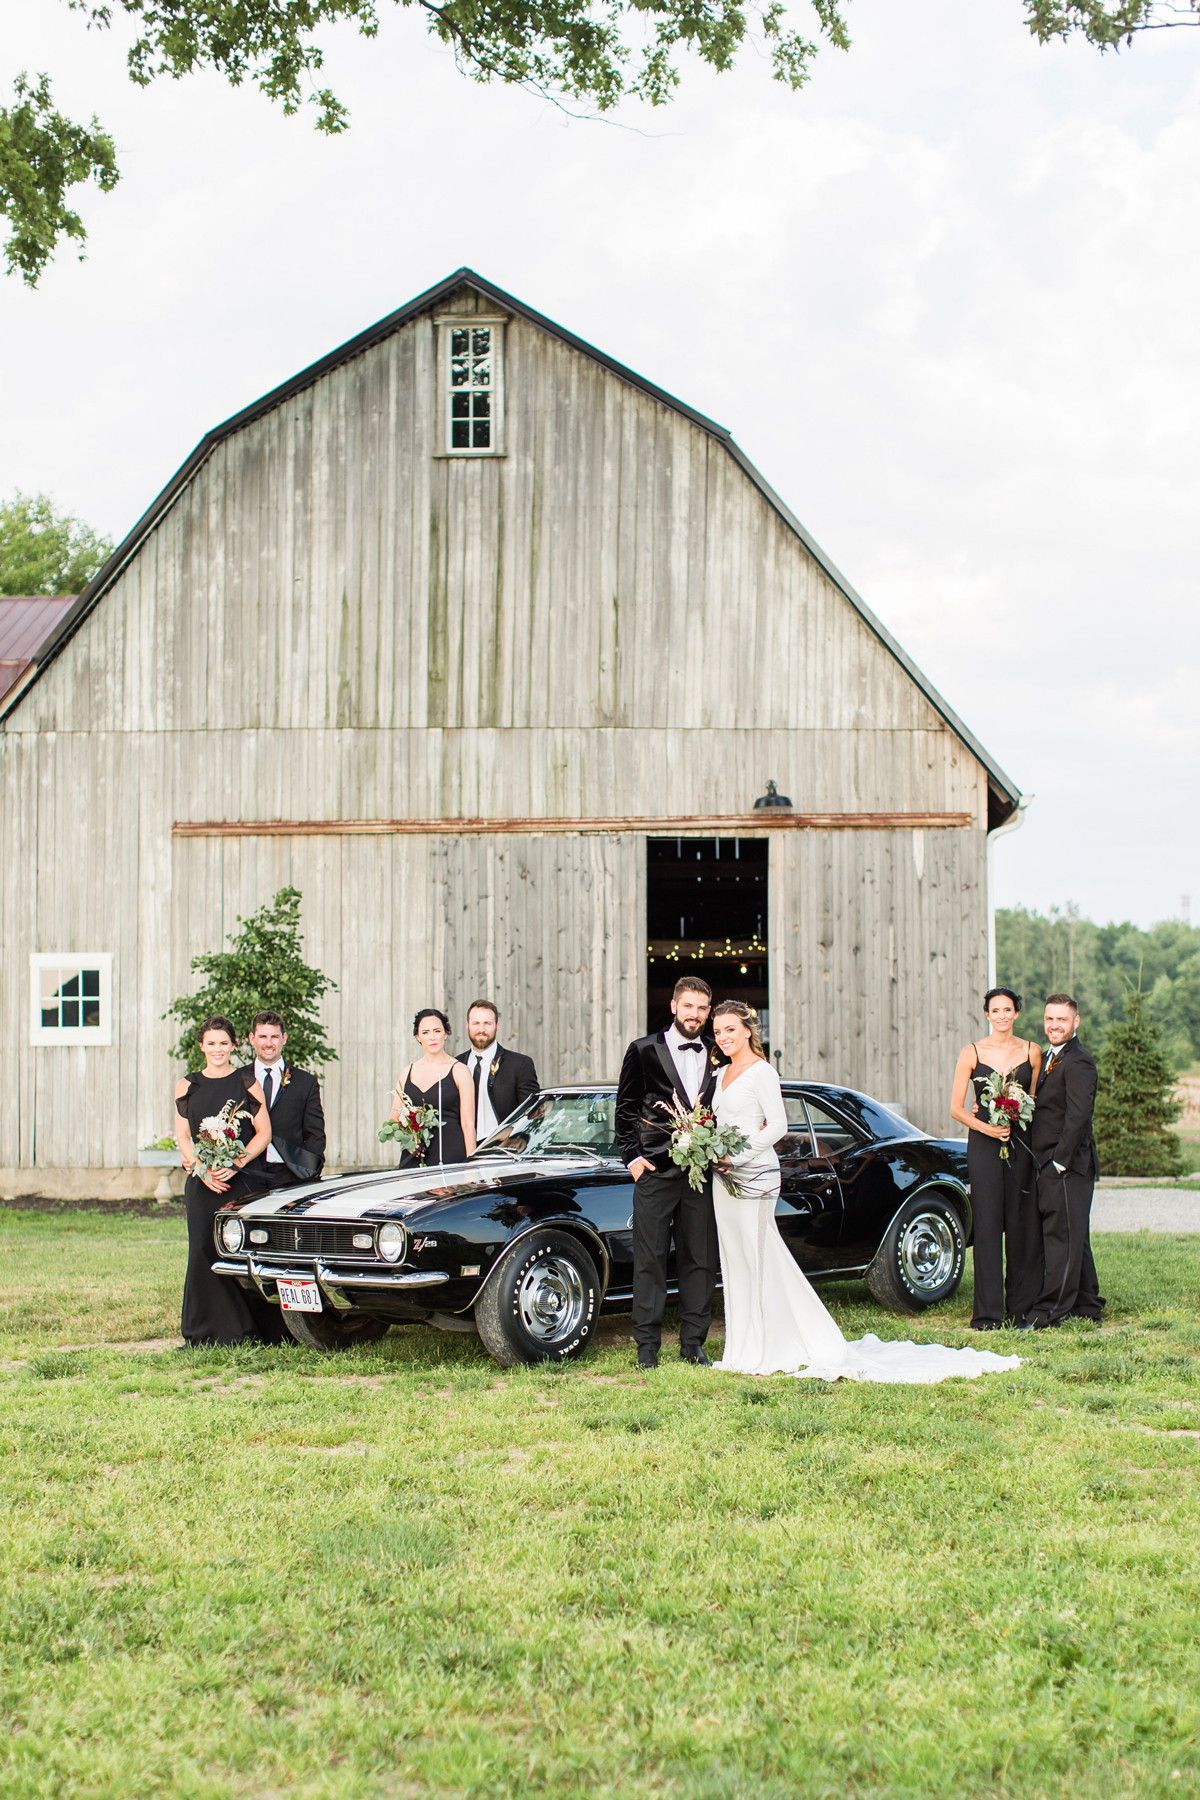 Black Bird Farm Ohio  | Nestled on a 150-acre farm surrounded by waving corn fields is The Black Bird Farm, a turn of the century farmhouse and dairy barn with all the charm of days gone by. Black Bird Farm Is a Northwest Ohio event venue specializing in weddings and private events.